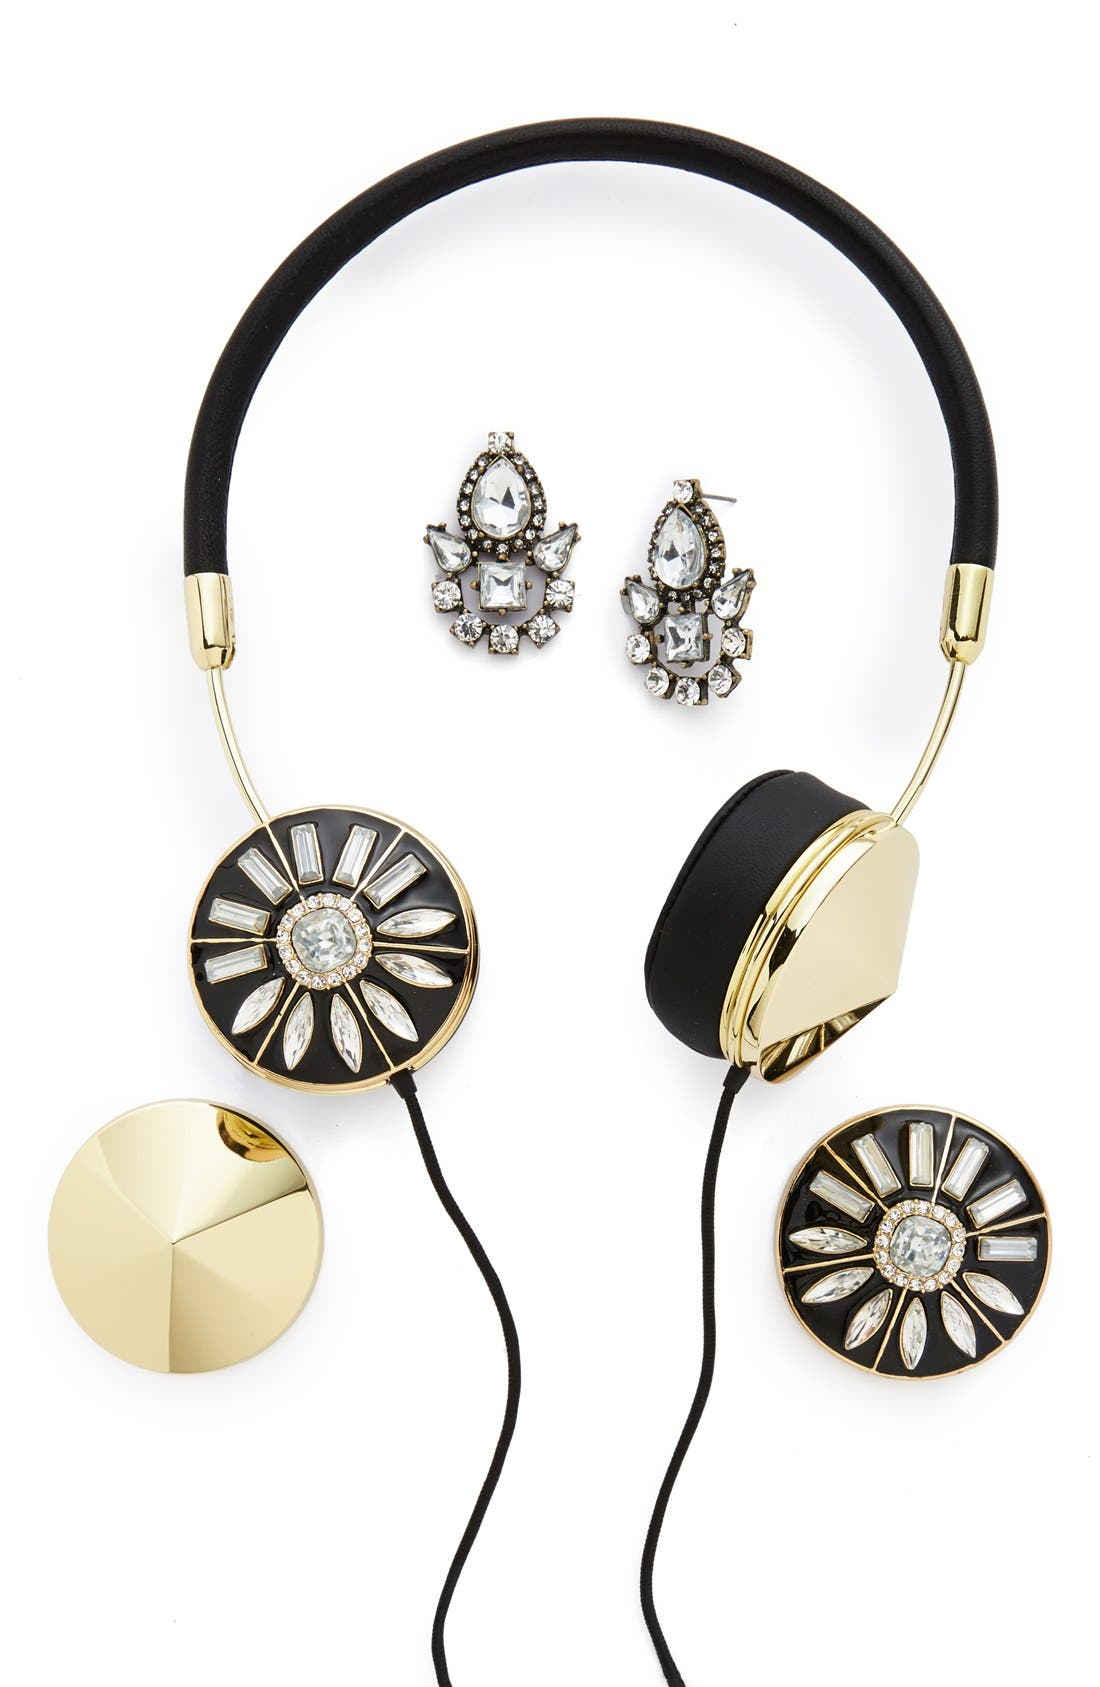 Main Image - Frends x BaubleBar 'Layla' Headphones